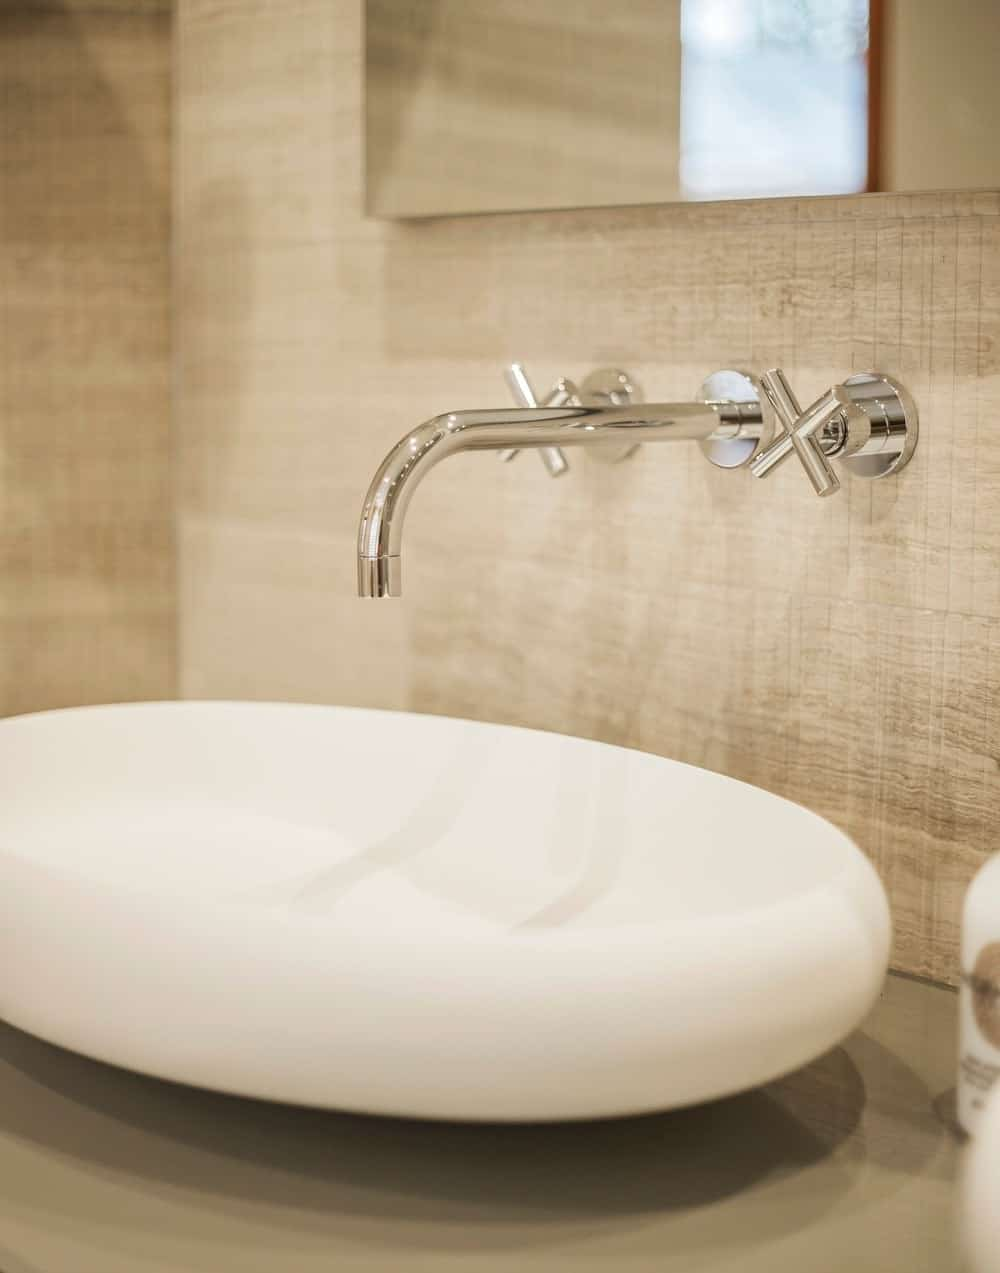 Contemporary bathroom focusing on the vessel sink. Photo credit: Photography / Styling : Rick Mccullagh / LLI Design